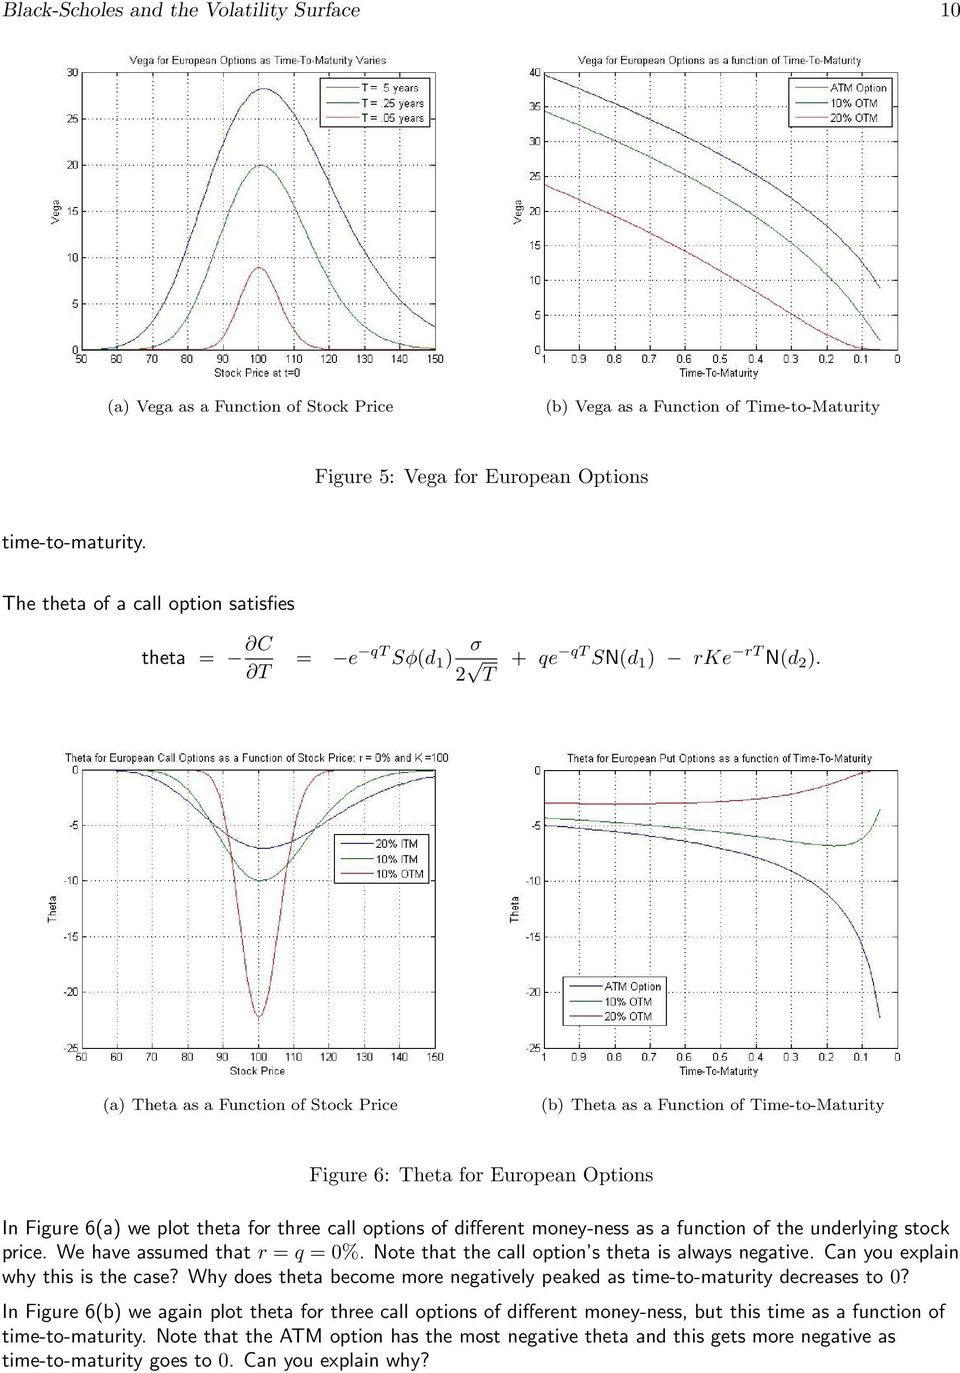 (a) Theta as a Function of Stock Price (b) Theta as a Function of Time-to-Maturity Figure 6: Theta for European Options In Figure 6(a) we plot theta for three call options of different money-ness as